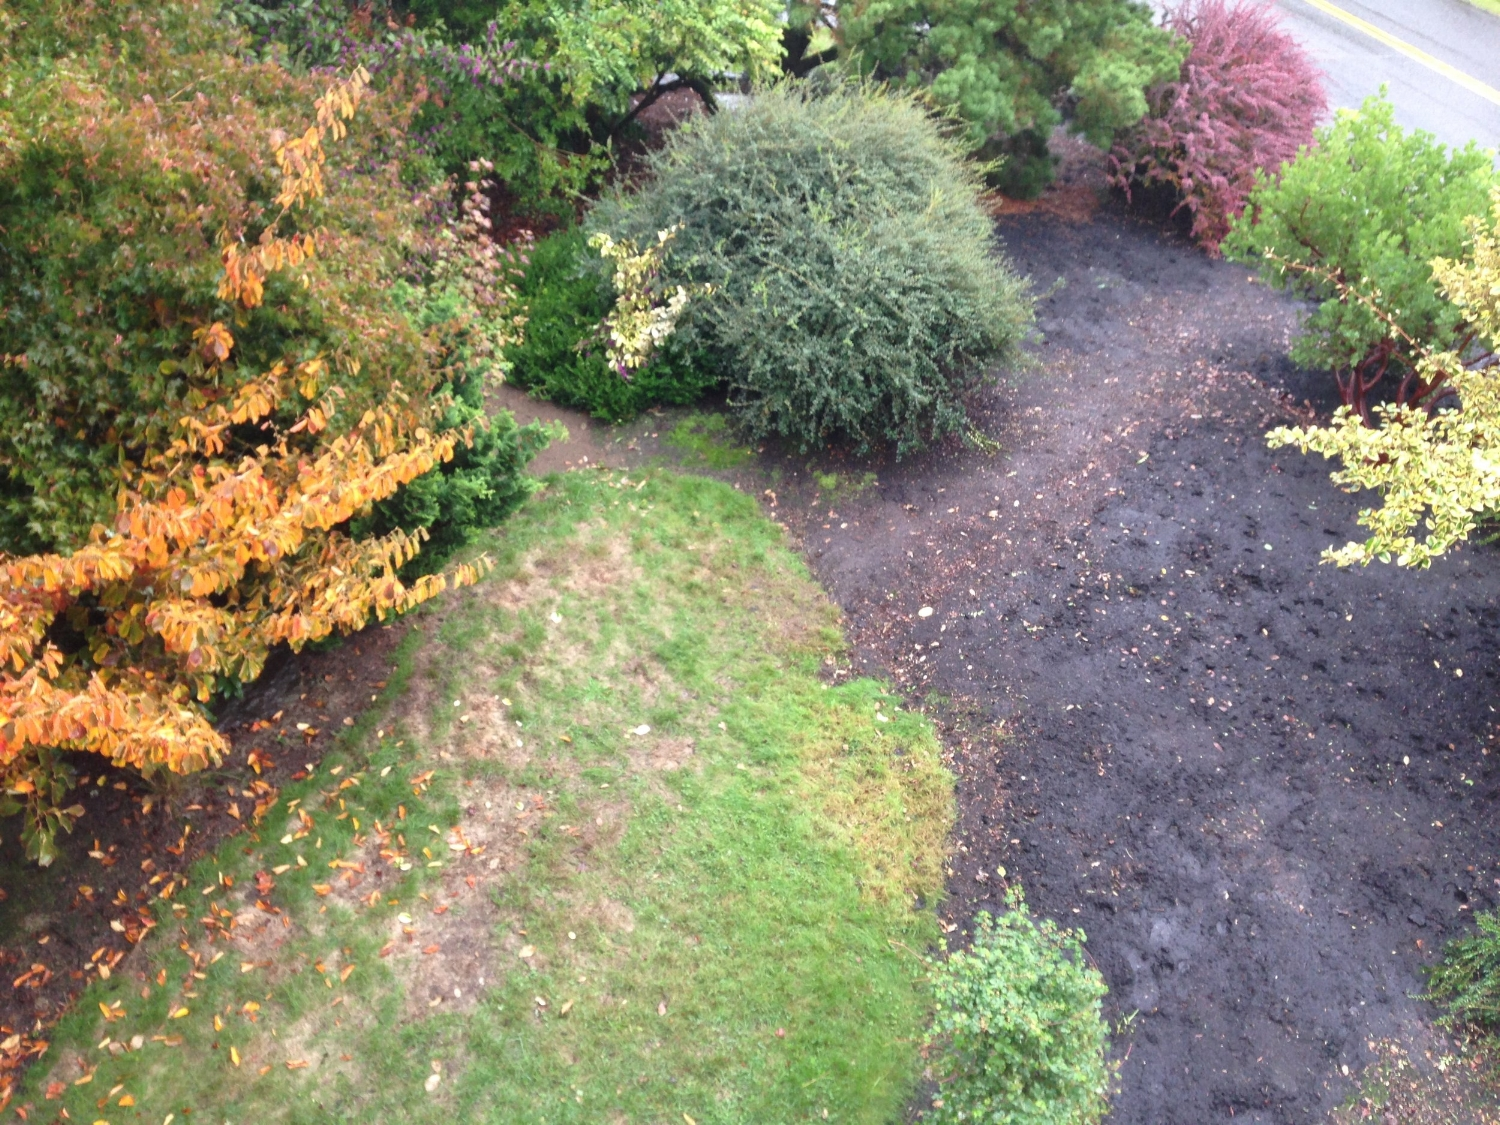 Fast forward. After much clean-up and some new mulch down, here is the cleared and cleaned area as seen from above. The largest barberry once stood in the dark-mulch area  center right . (One barberry remains,  upper right .)